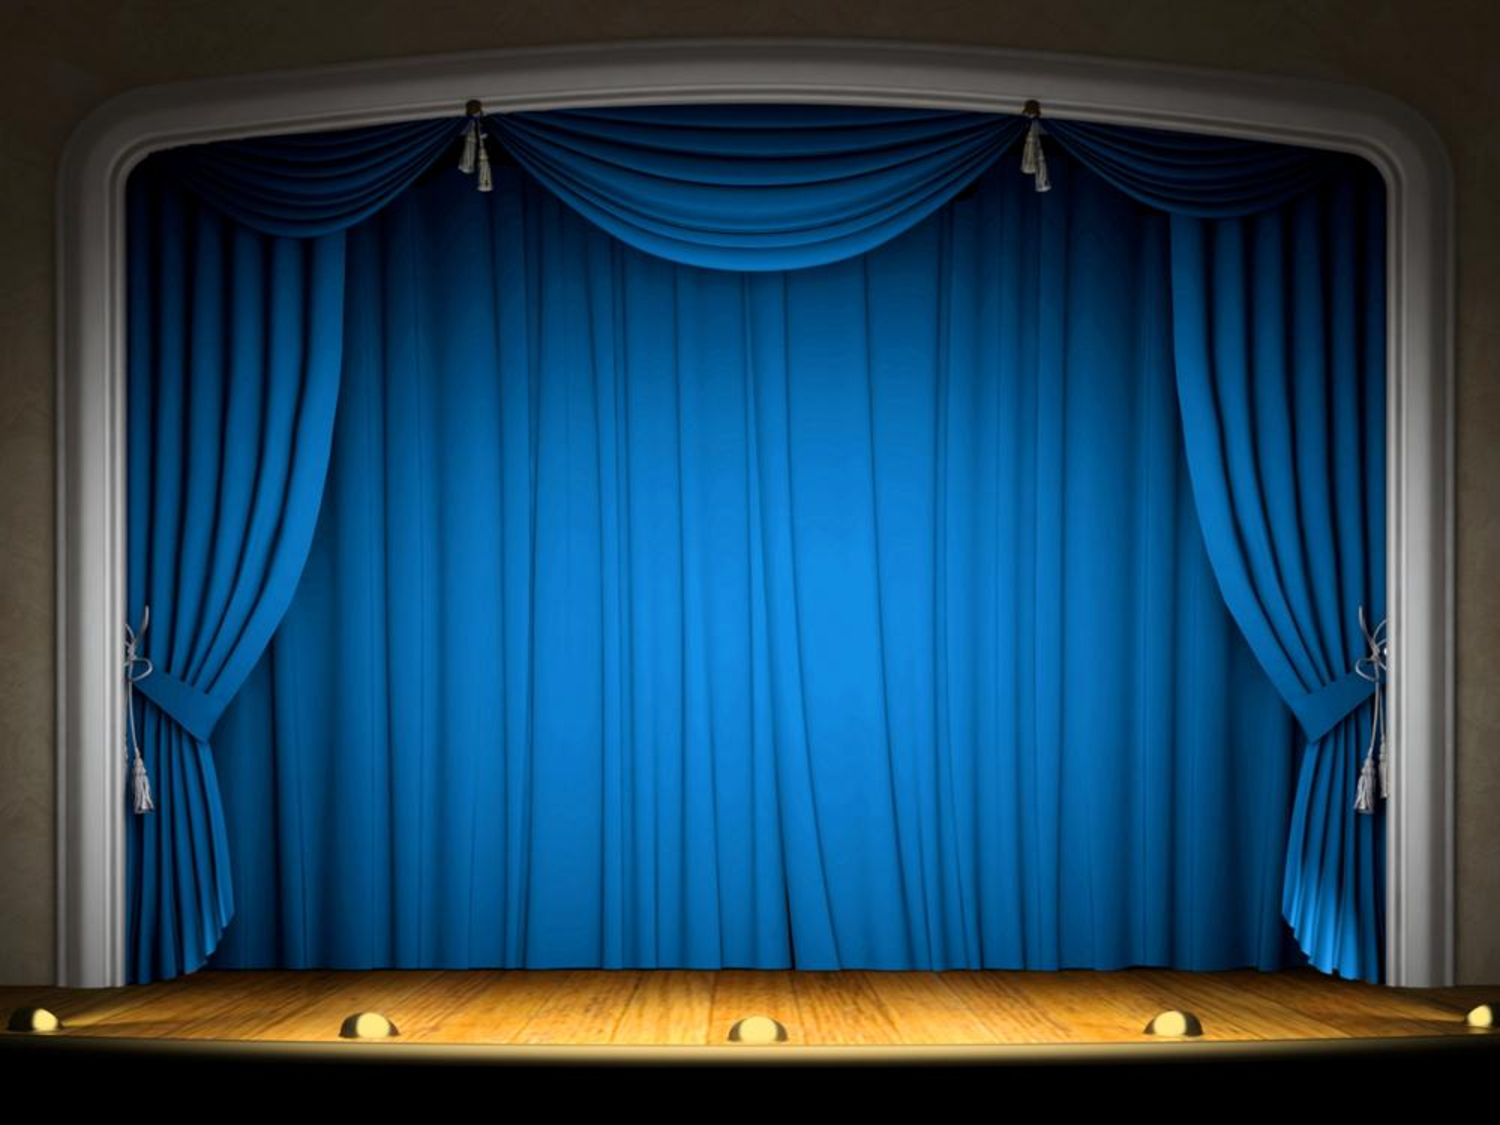 Stage Curtains as well PBS Kids Dragon Tales Credits together with Free HTML5 Responsive Templates as well Fontes De Letras together with Asdf Movie. on download opera 2012 html